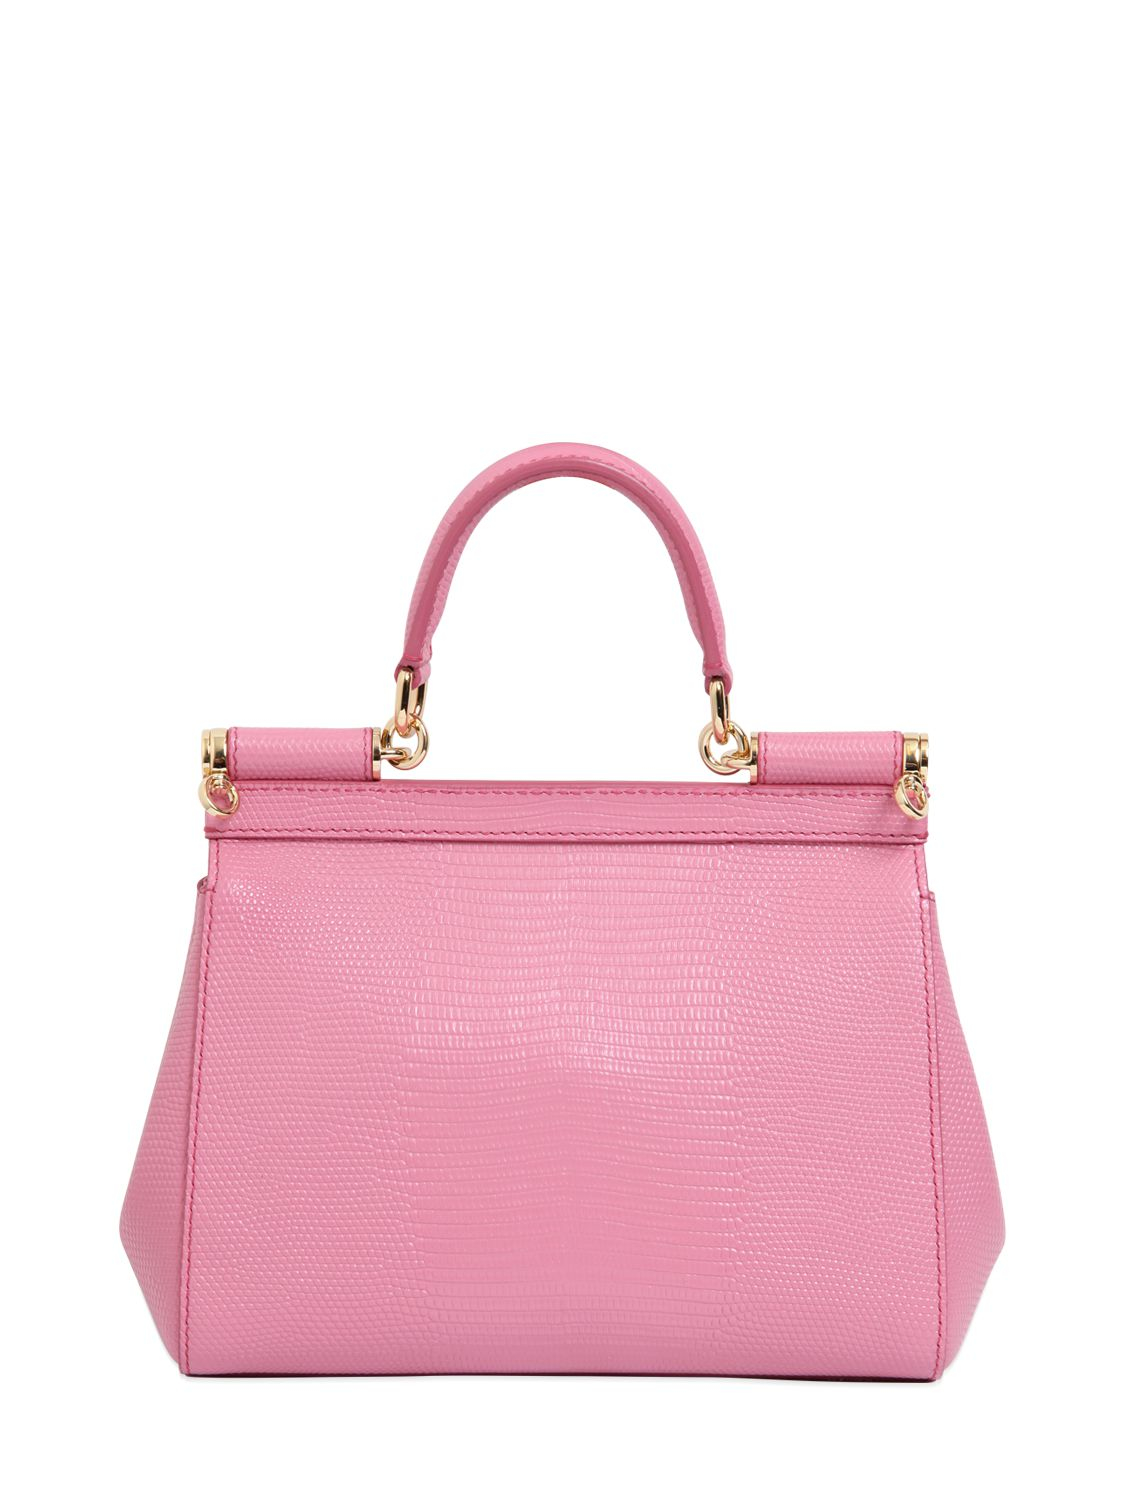 Lyst - Dolce   Gabbana Small Sicily Iguana Embossed Leather Bag in Pink 0a750f6724